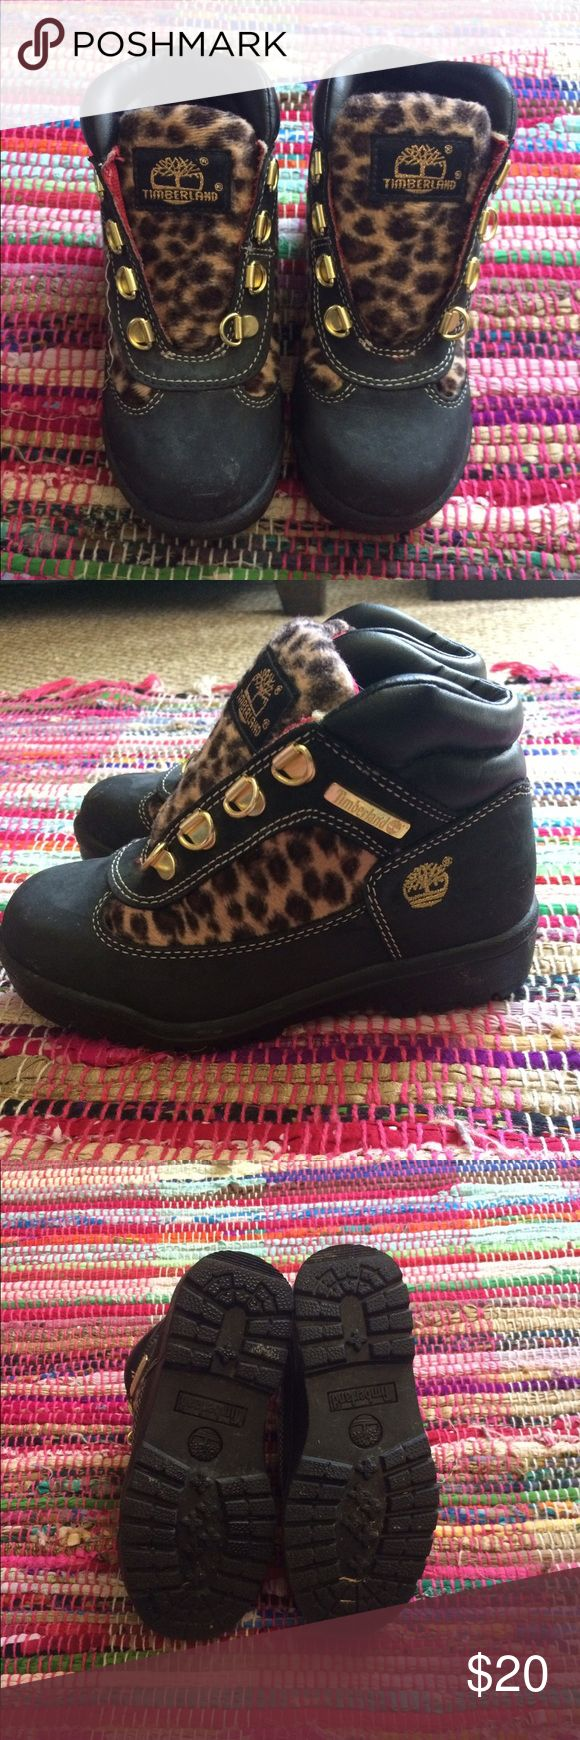 Girls Timberland Boots Little girls Timberland in good condition ▫️ missing shoelaces and stitching on right shoe ... Timberland Shoes Lace Up Boots